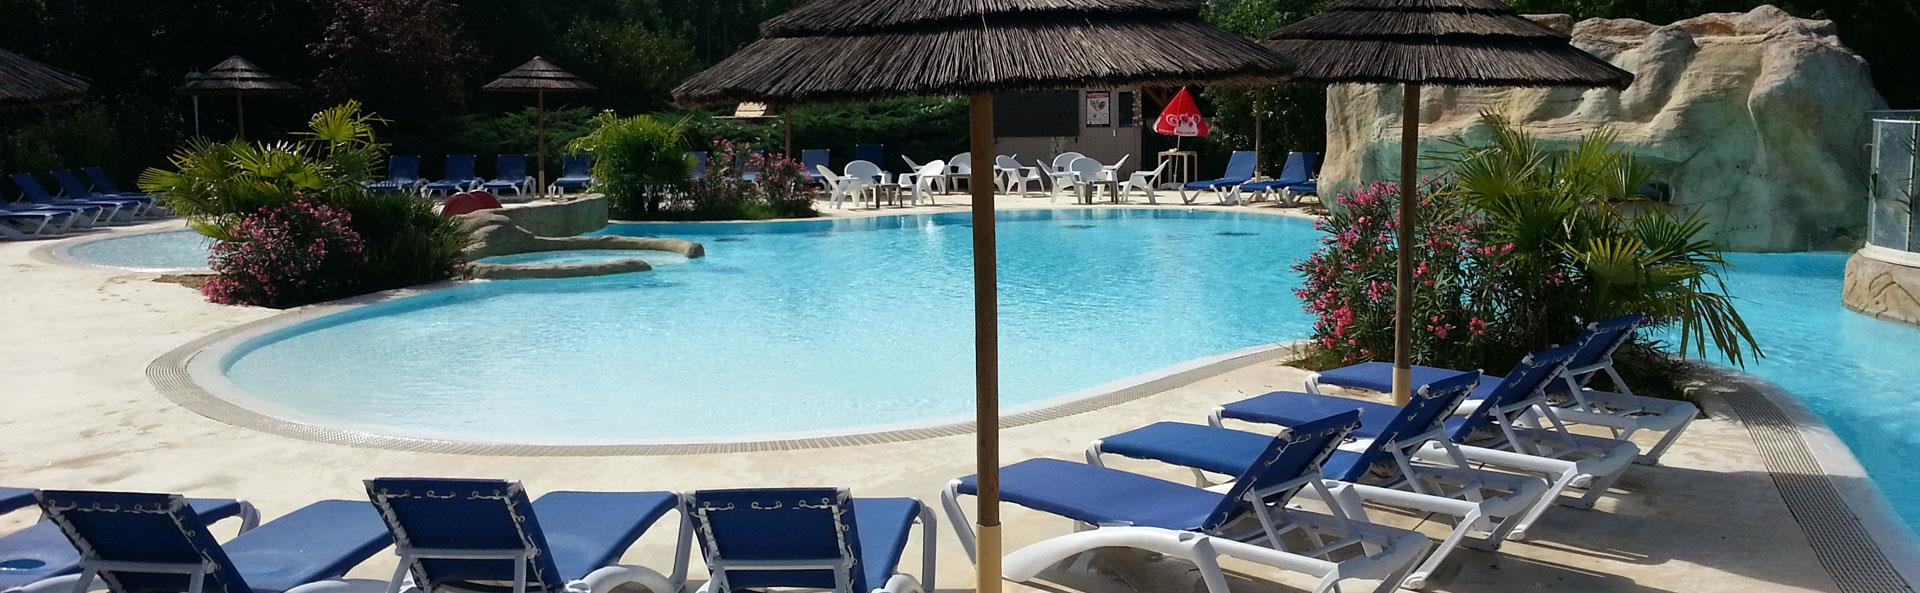 Camping Quercy  - Lot Evasion : camping dans le Lot